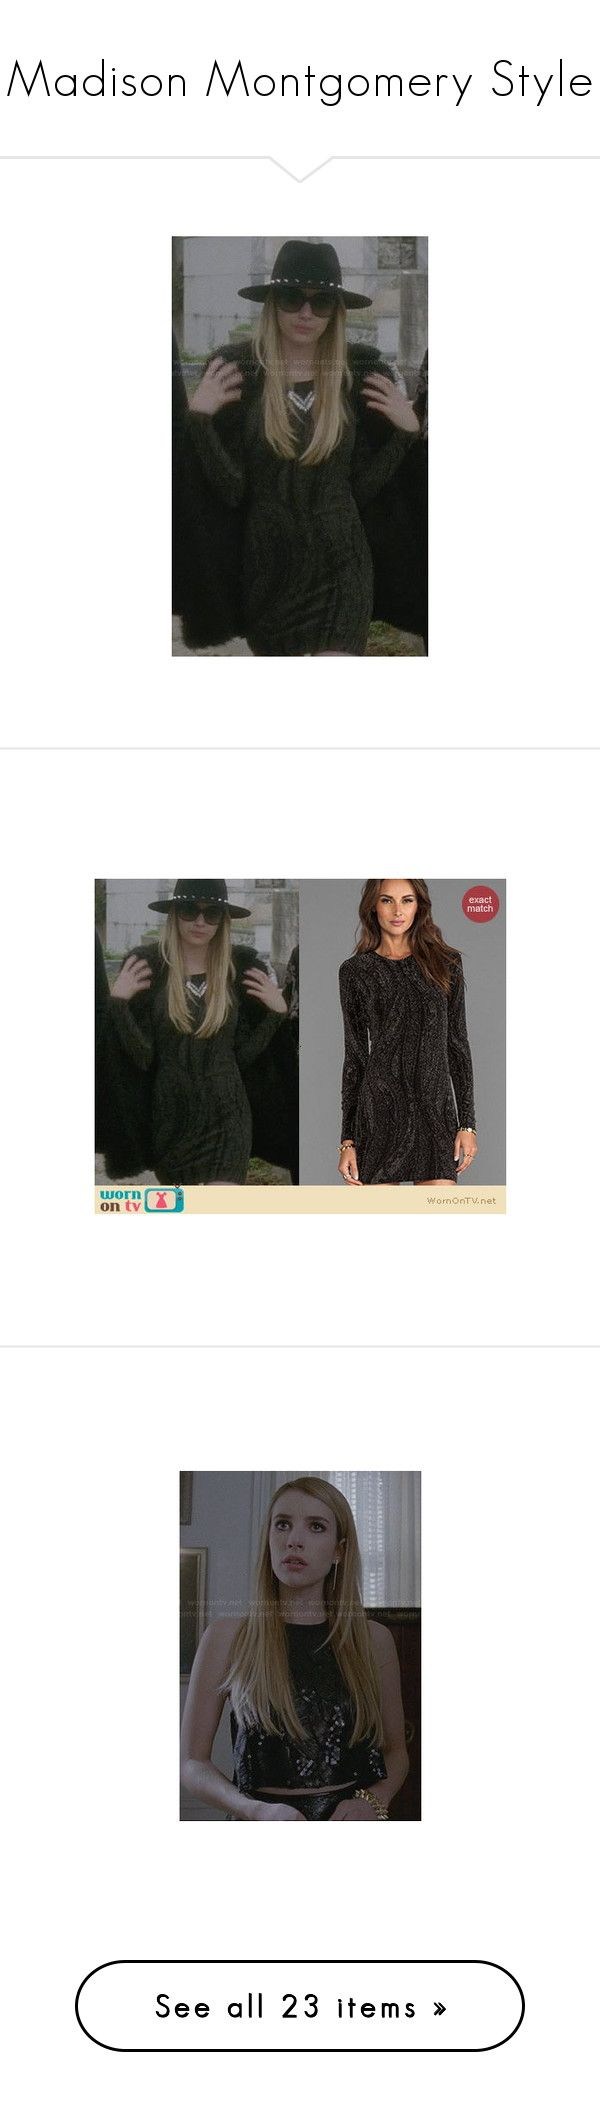 """Madison Montgomery Style"" by demiwitch-of-mischief ❤ liked on Polyvore featuring dresses, body conscious dress, metallic print dress, metallic bodycon dress, bodycon dress, print bodycon dress, print dresses, americana dress, metallic dress and pattern dress"